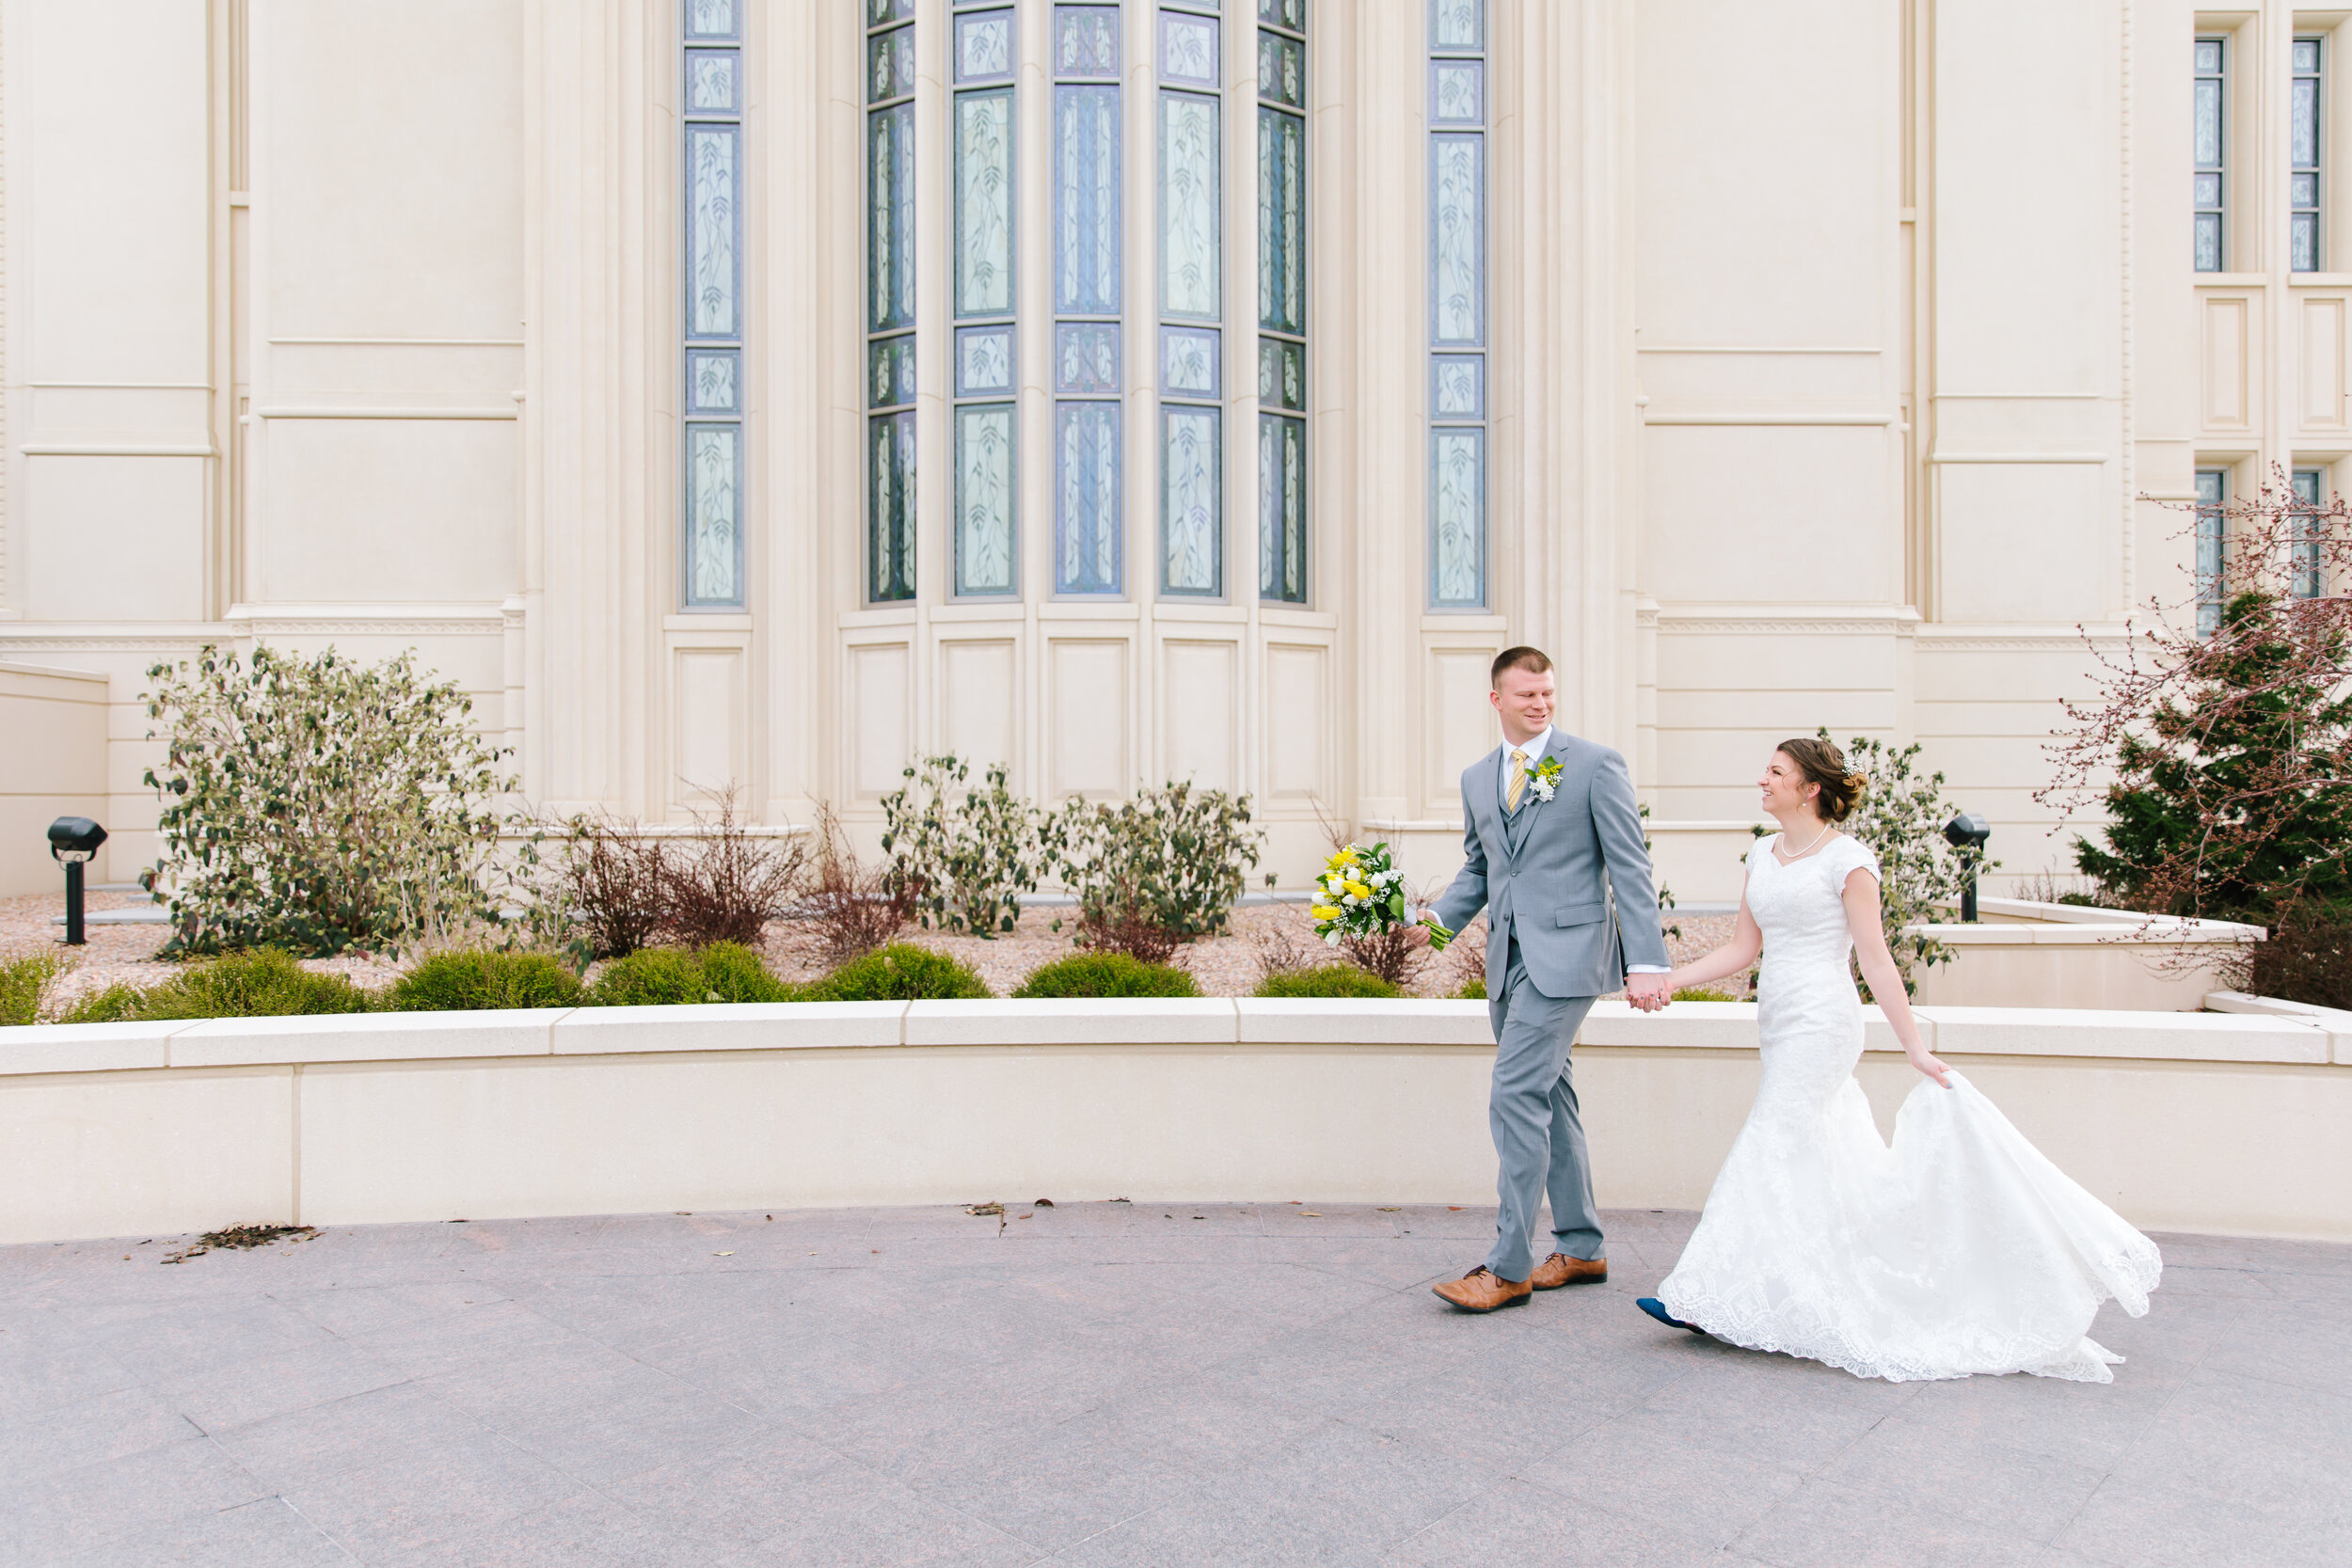 bright and airy wedding day pictures groom leading the bride payson temple temple grounds utah couple beautiful wedding dress amazing couple stain glass windows payson temple walls the church of Jesus Christ of latter day saints wedding eternal best buddies #eternalbuddies #weddingsession #weddinginspo #ldswedding #ldsbride #couplegoals #paysontemple #temple #profressionalphotographer #utah #love